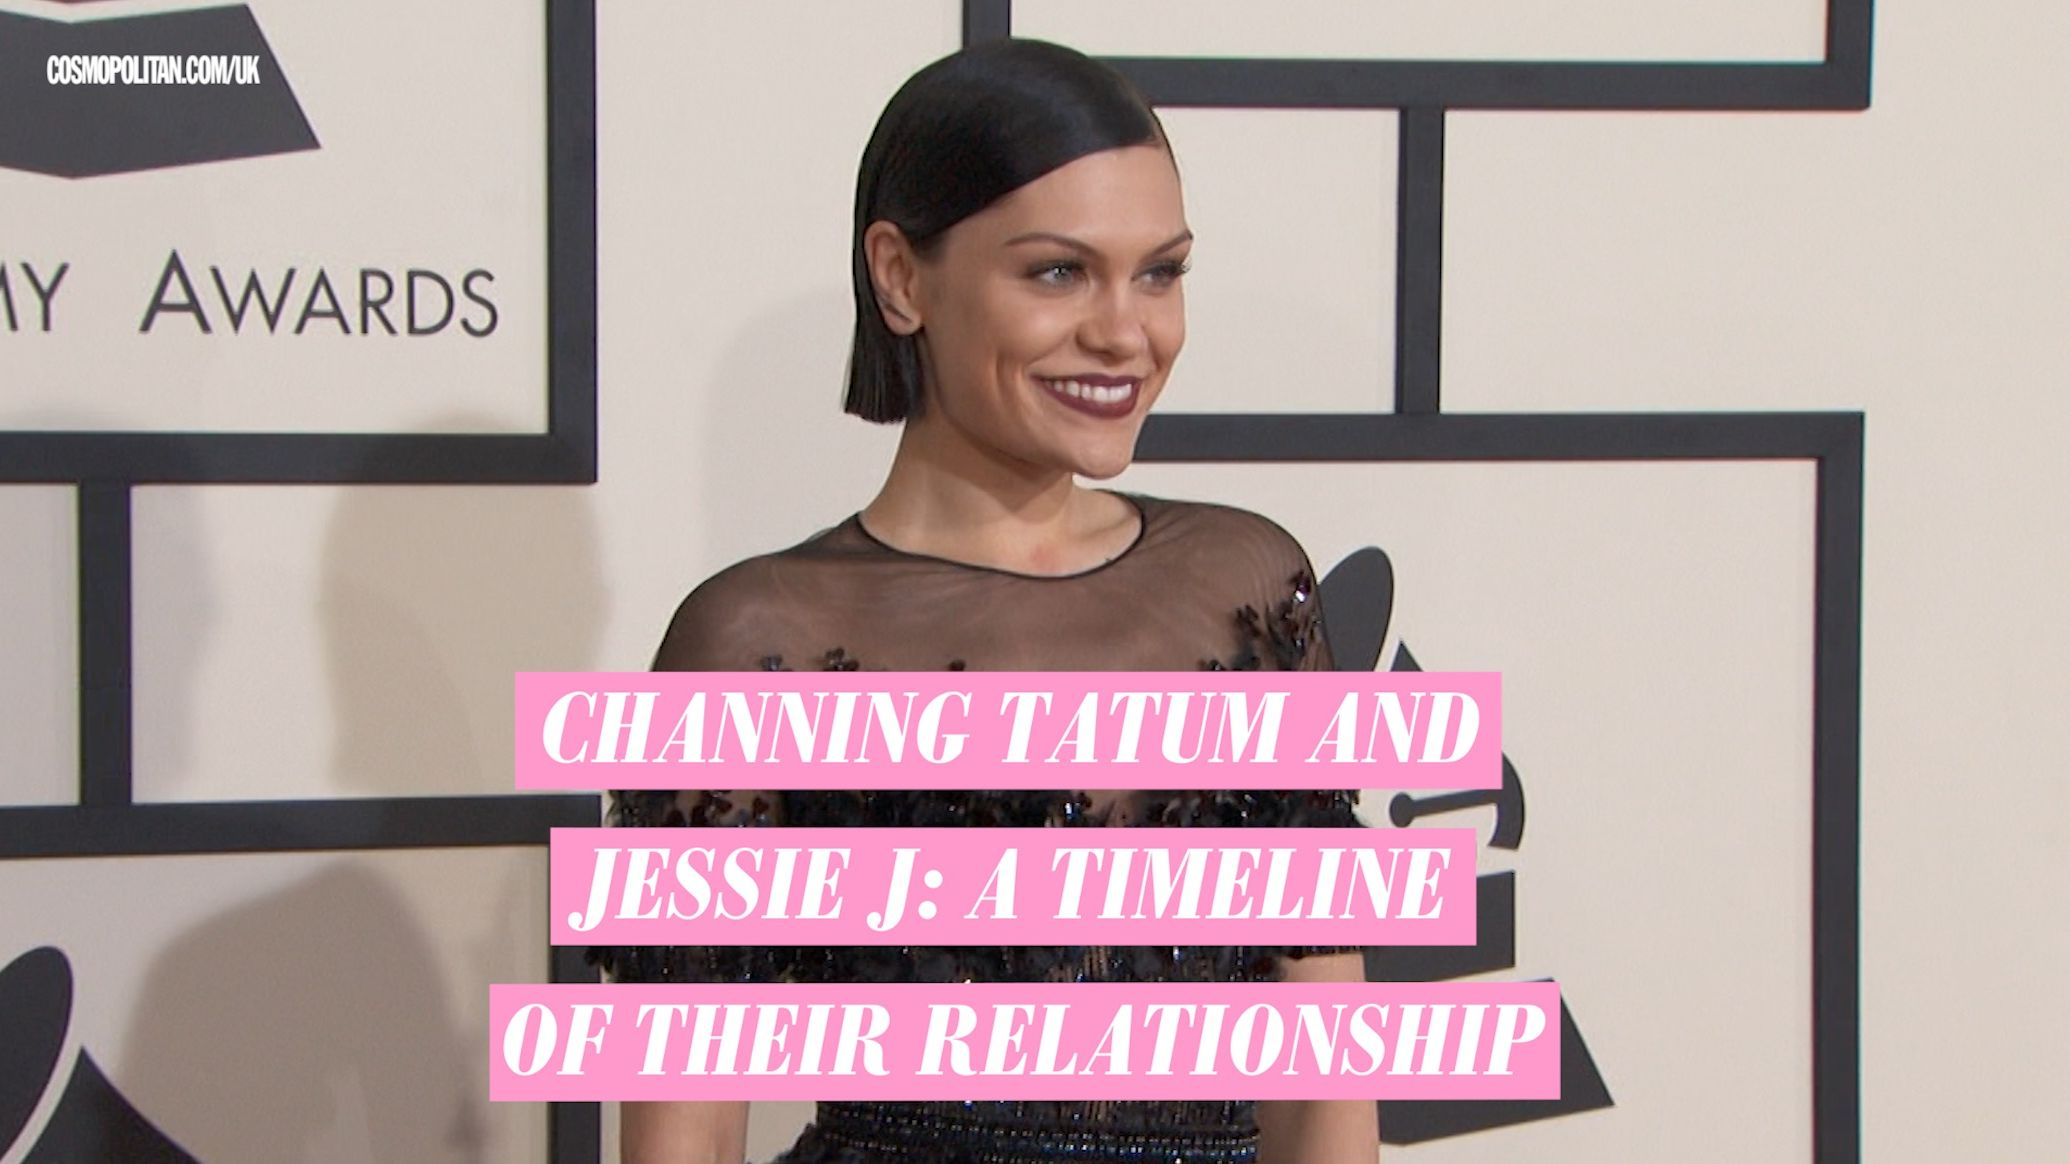 Channing Tatum And Jessie J Are Back Together After Their Secret Breakup In November